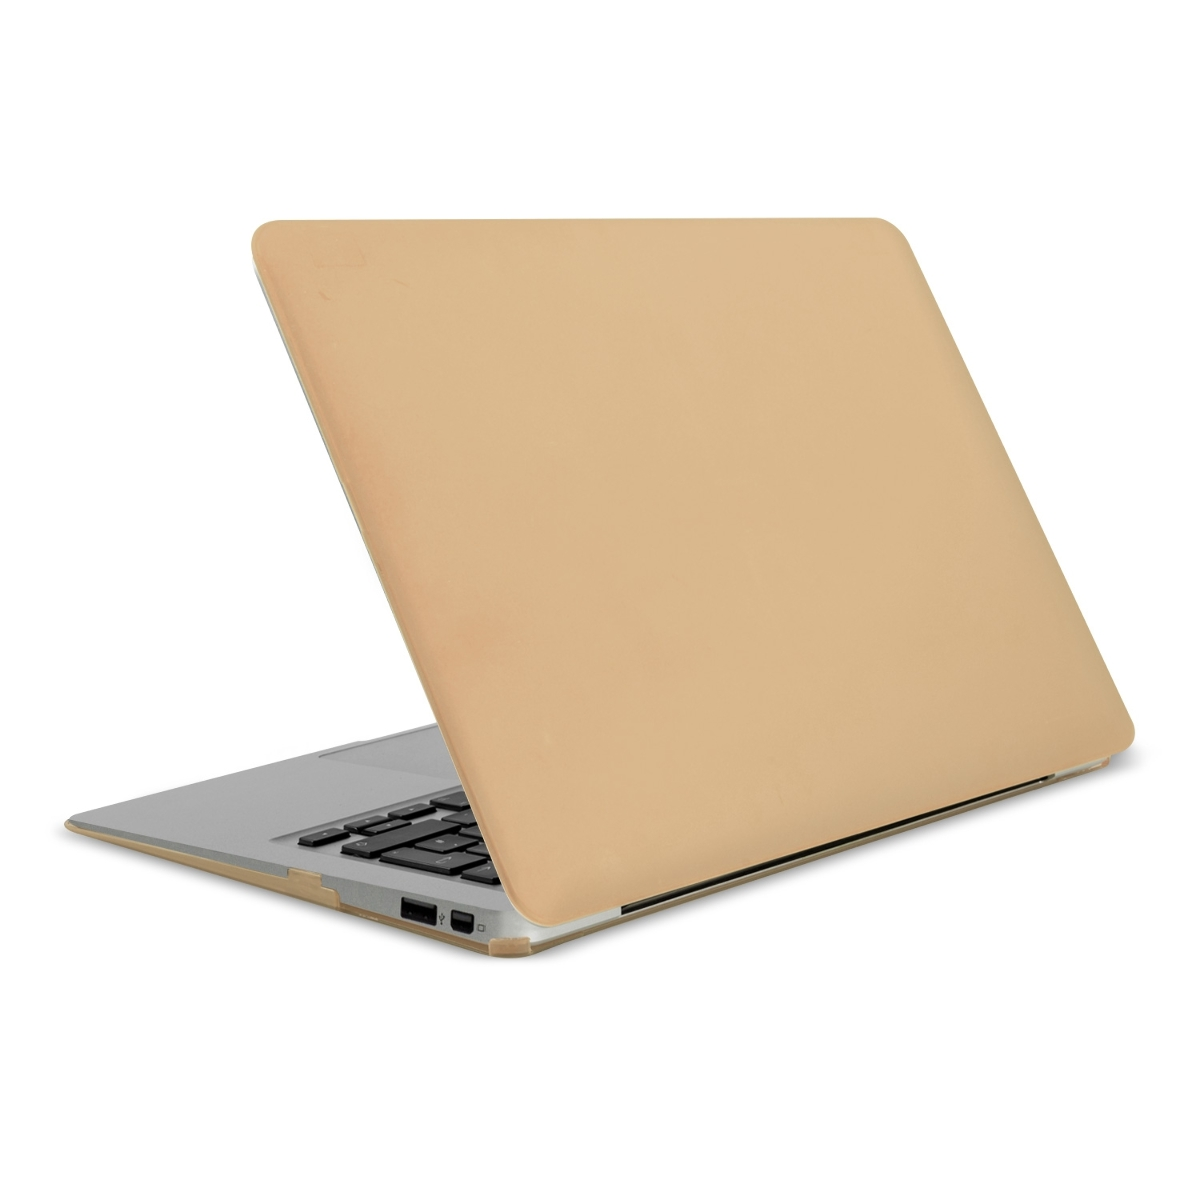 FUNDA-RECUBIERTA-DE-GOMA-PARA-APPLE-MACBOOK-AIR-13-A-PARTIR-DE-MEDIADOS-DE-2011